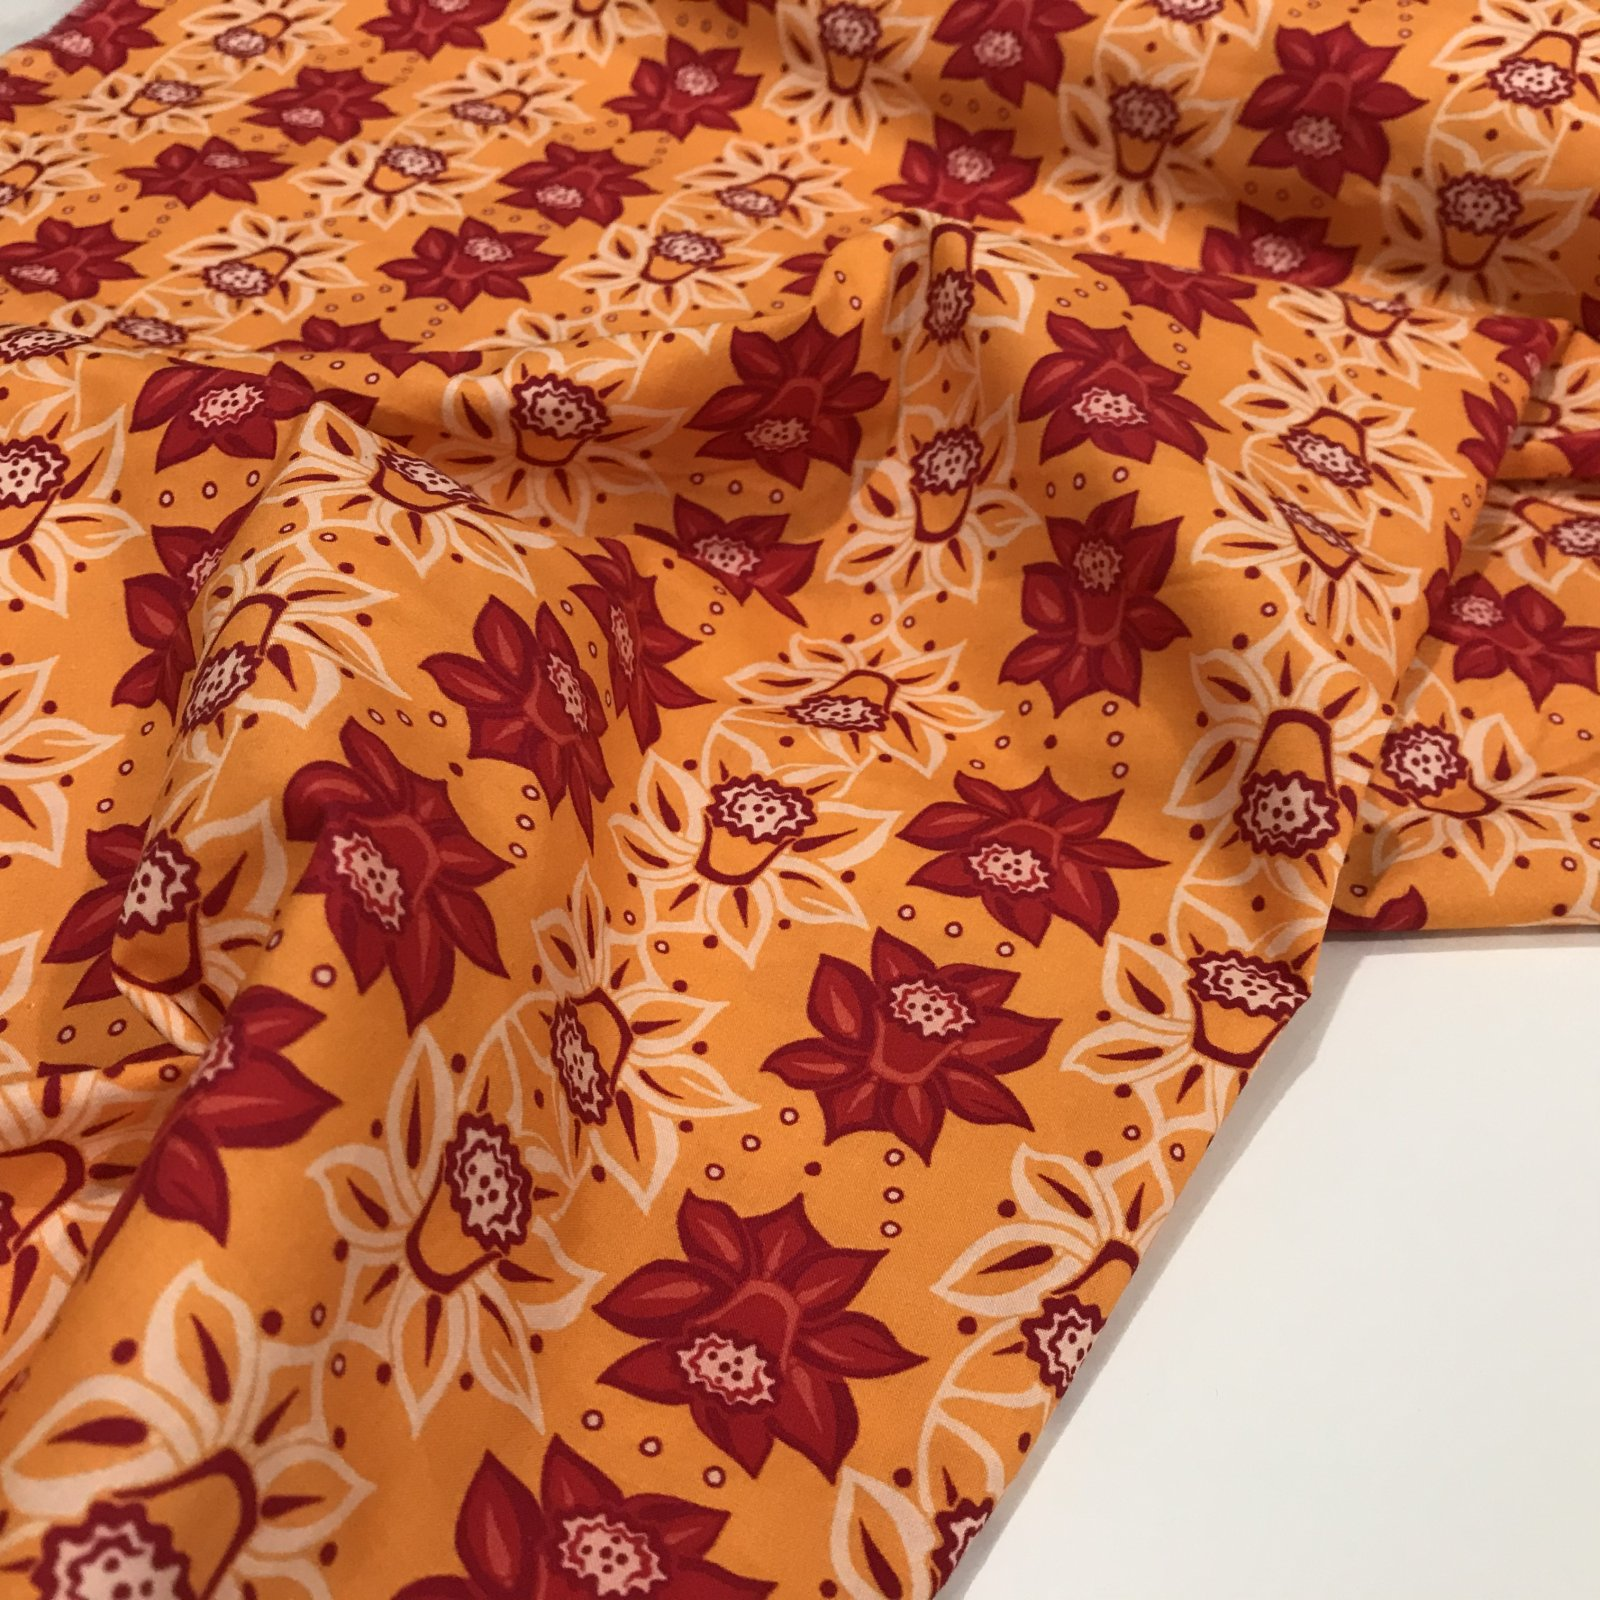 100% Organic Cotton Poplin - Festive Flora - Yellow